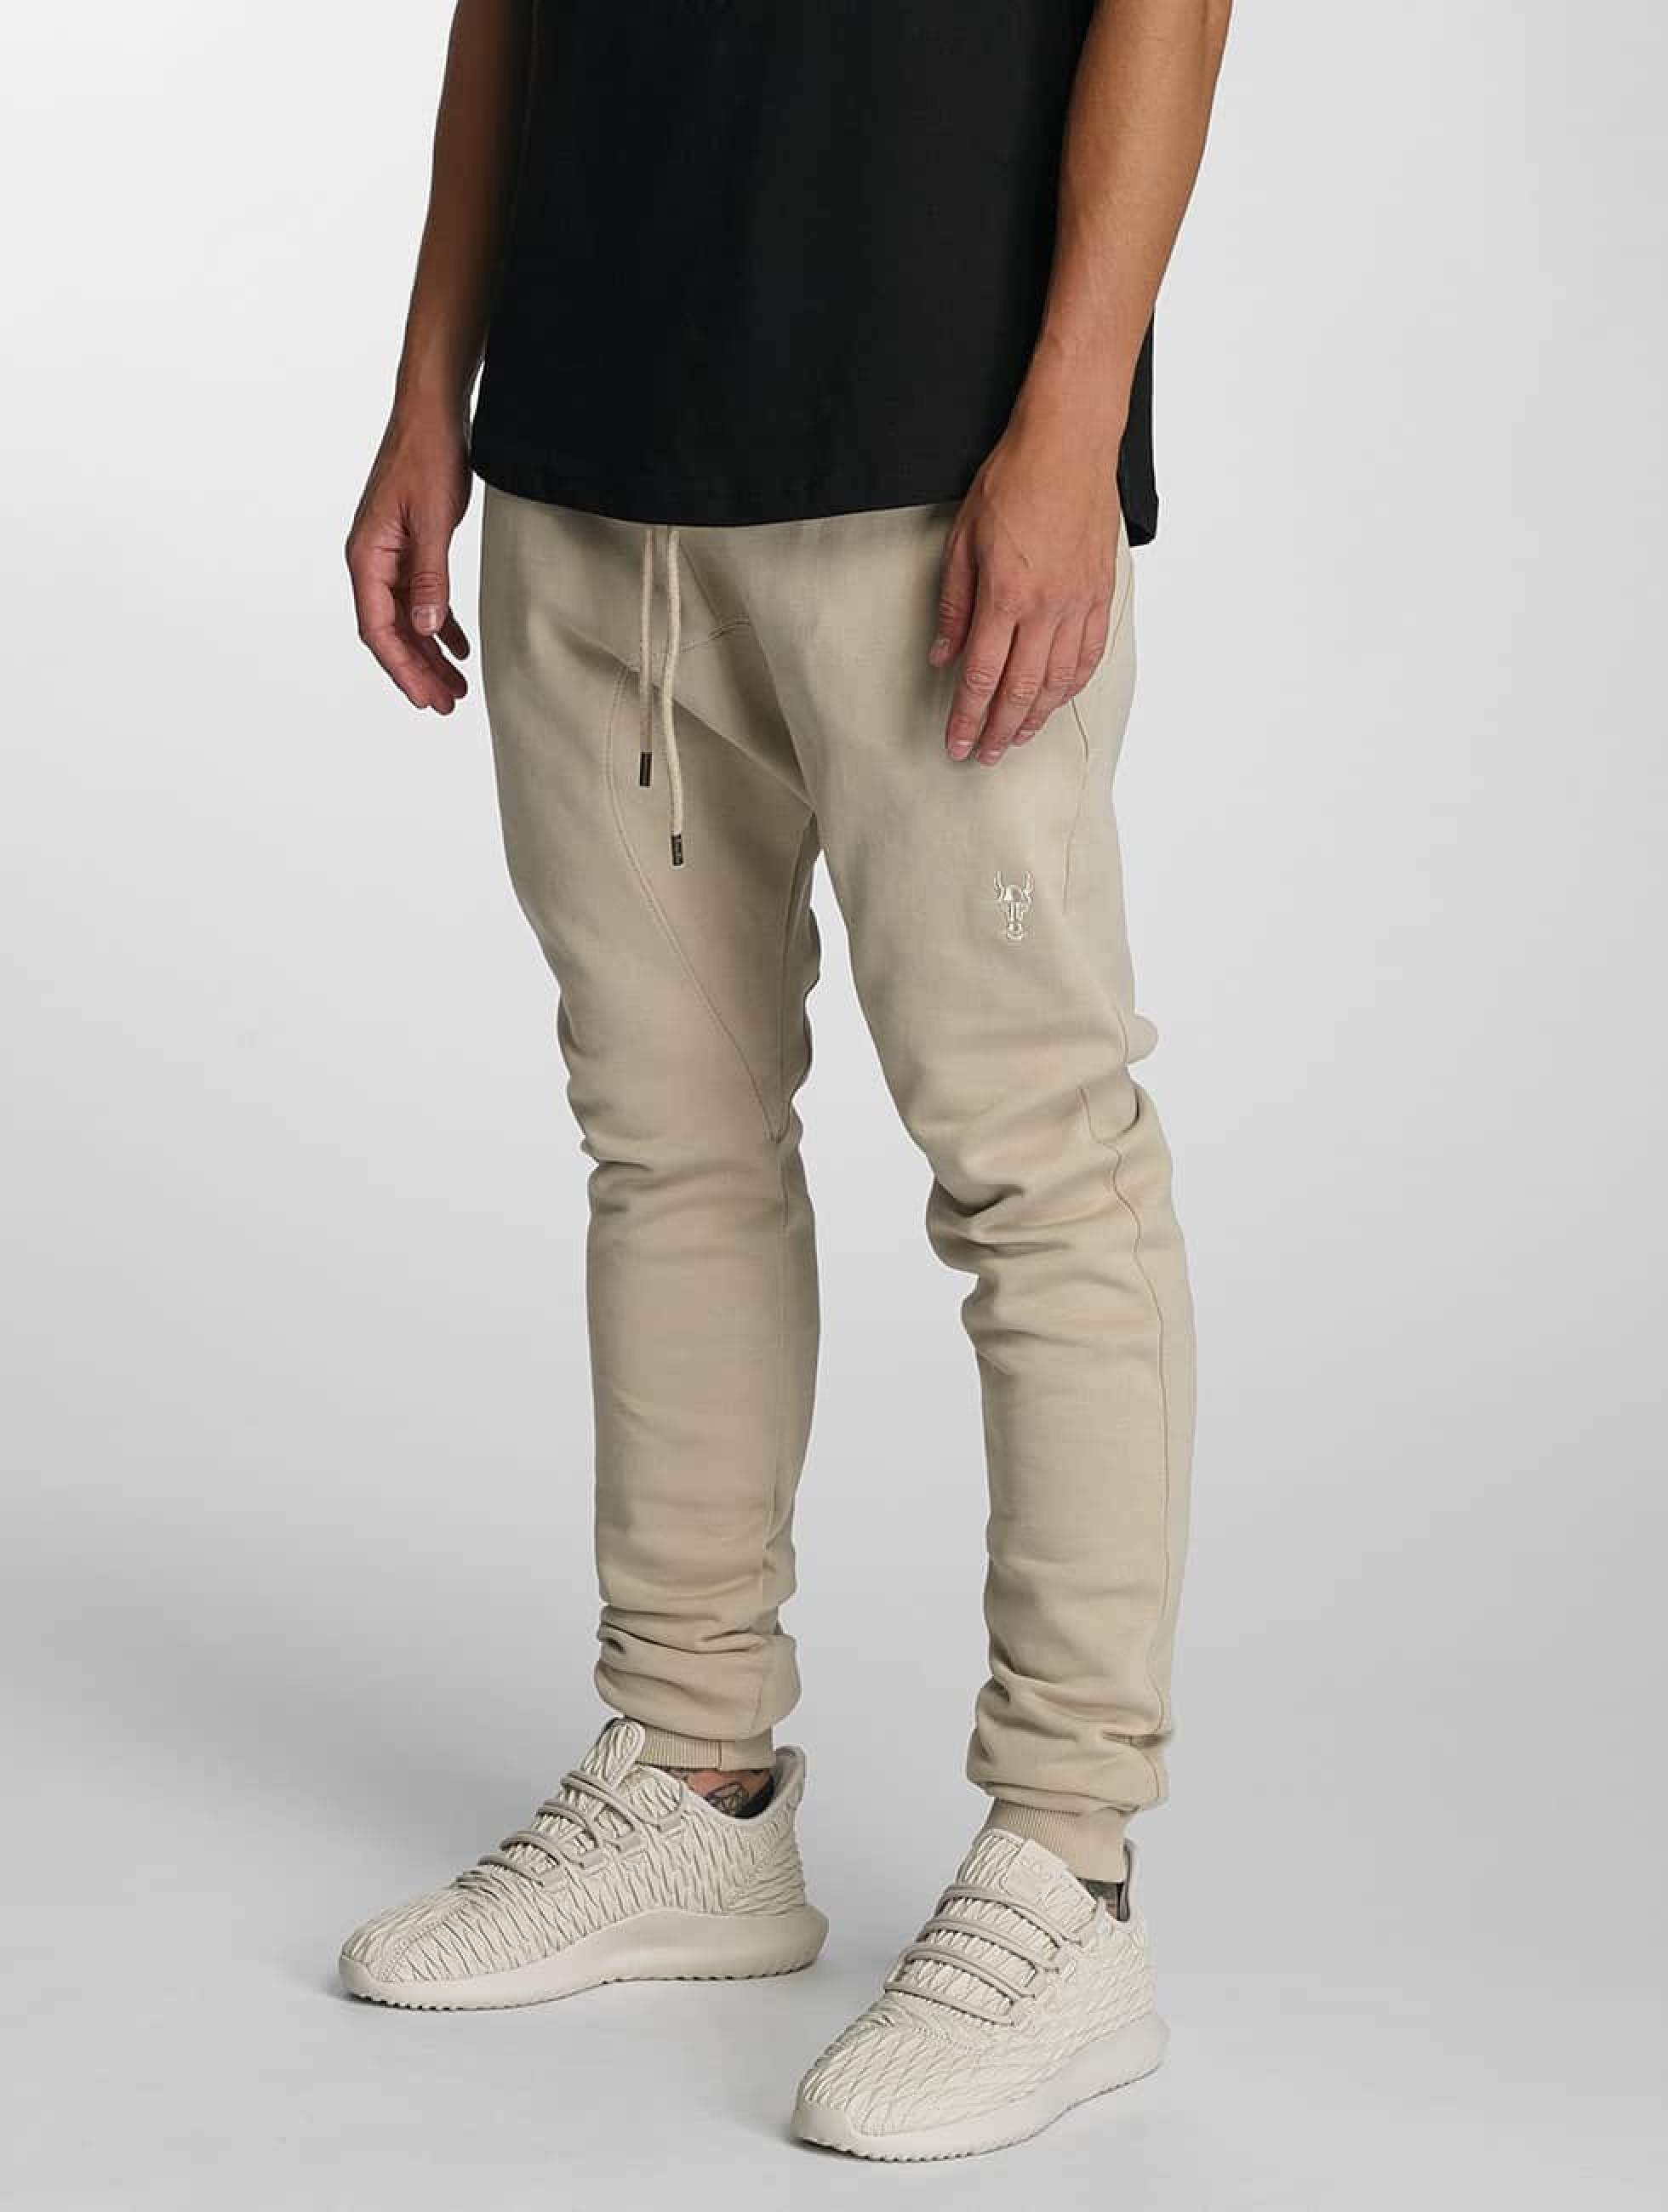 De Ferro / Sweat Pant Streets Abram in beige XL